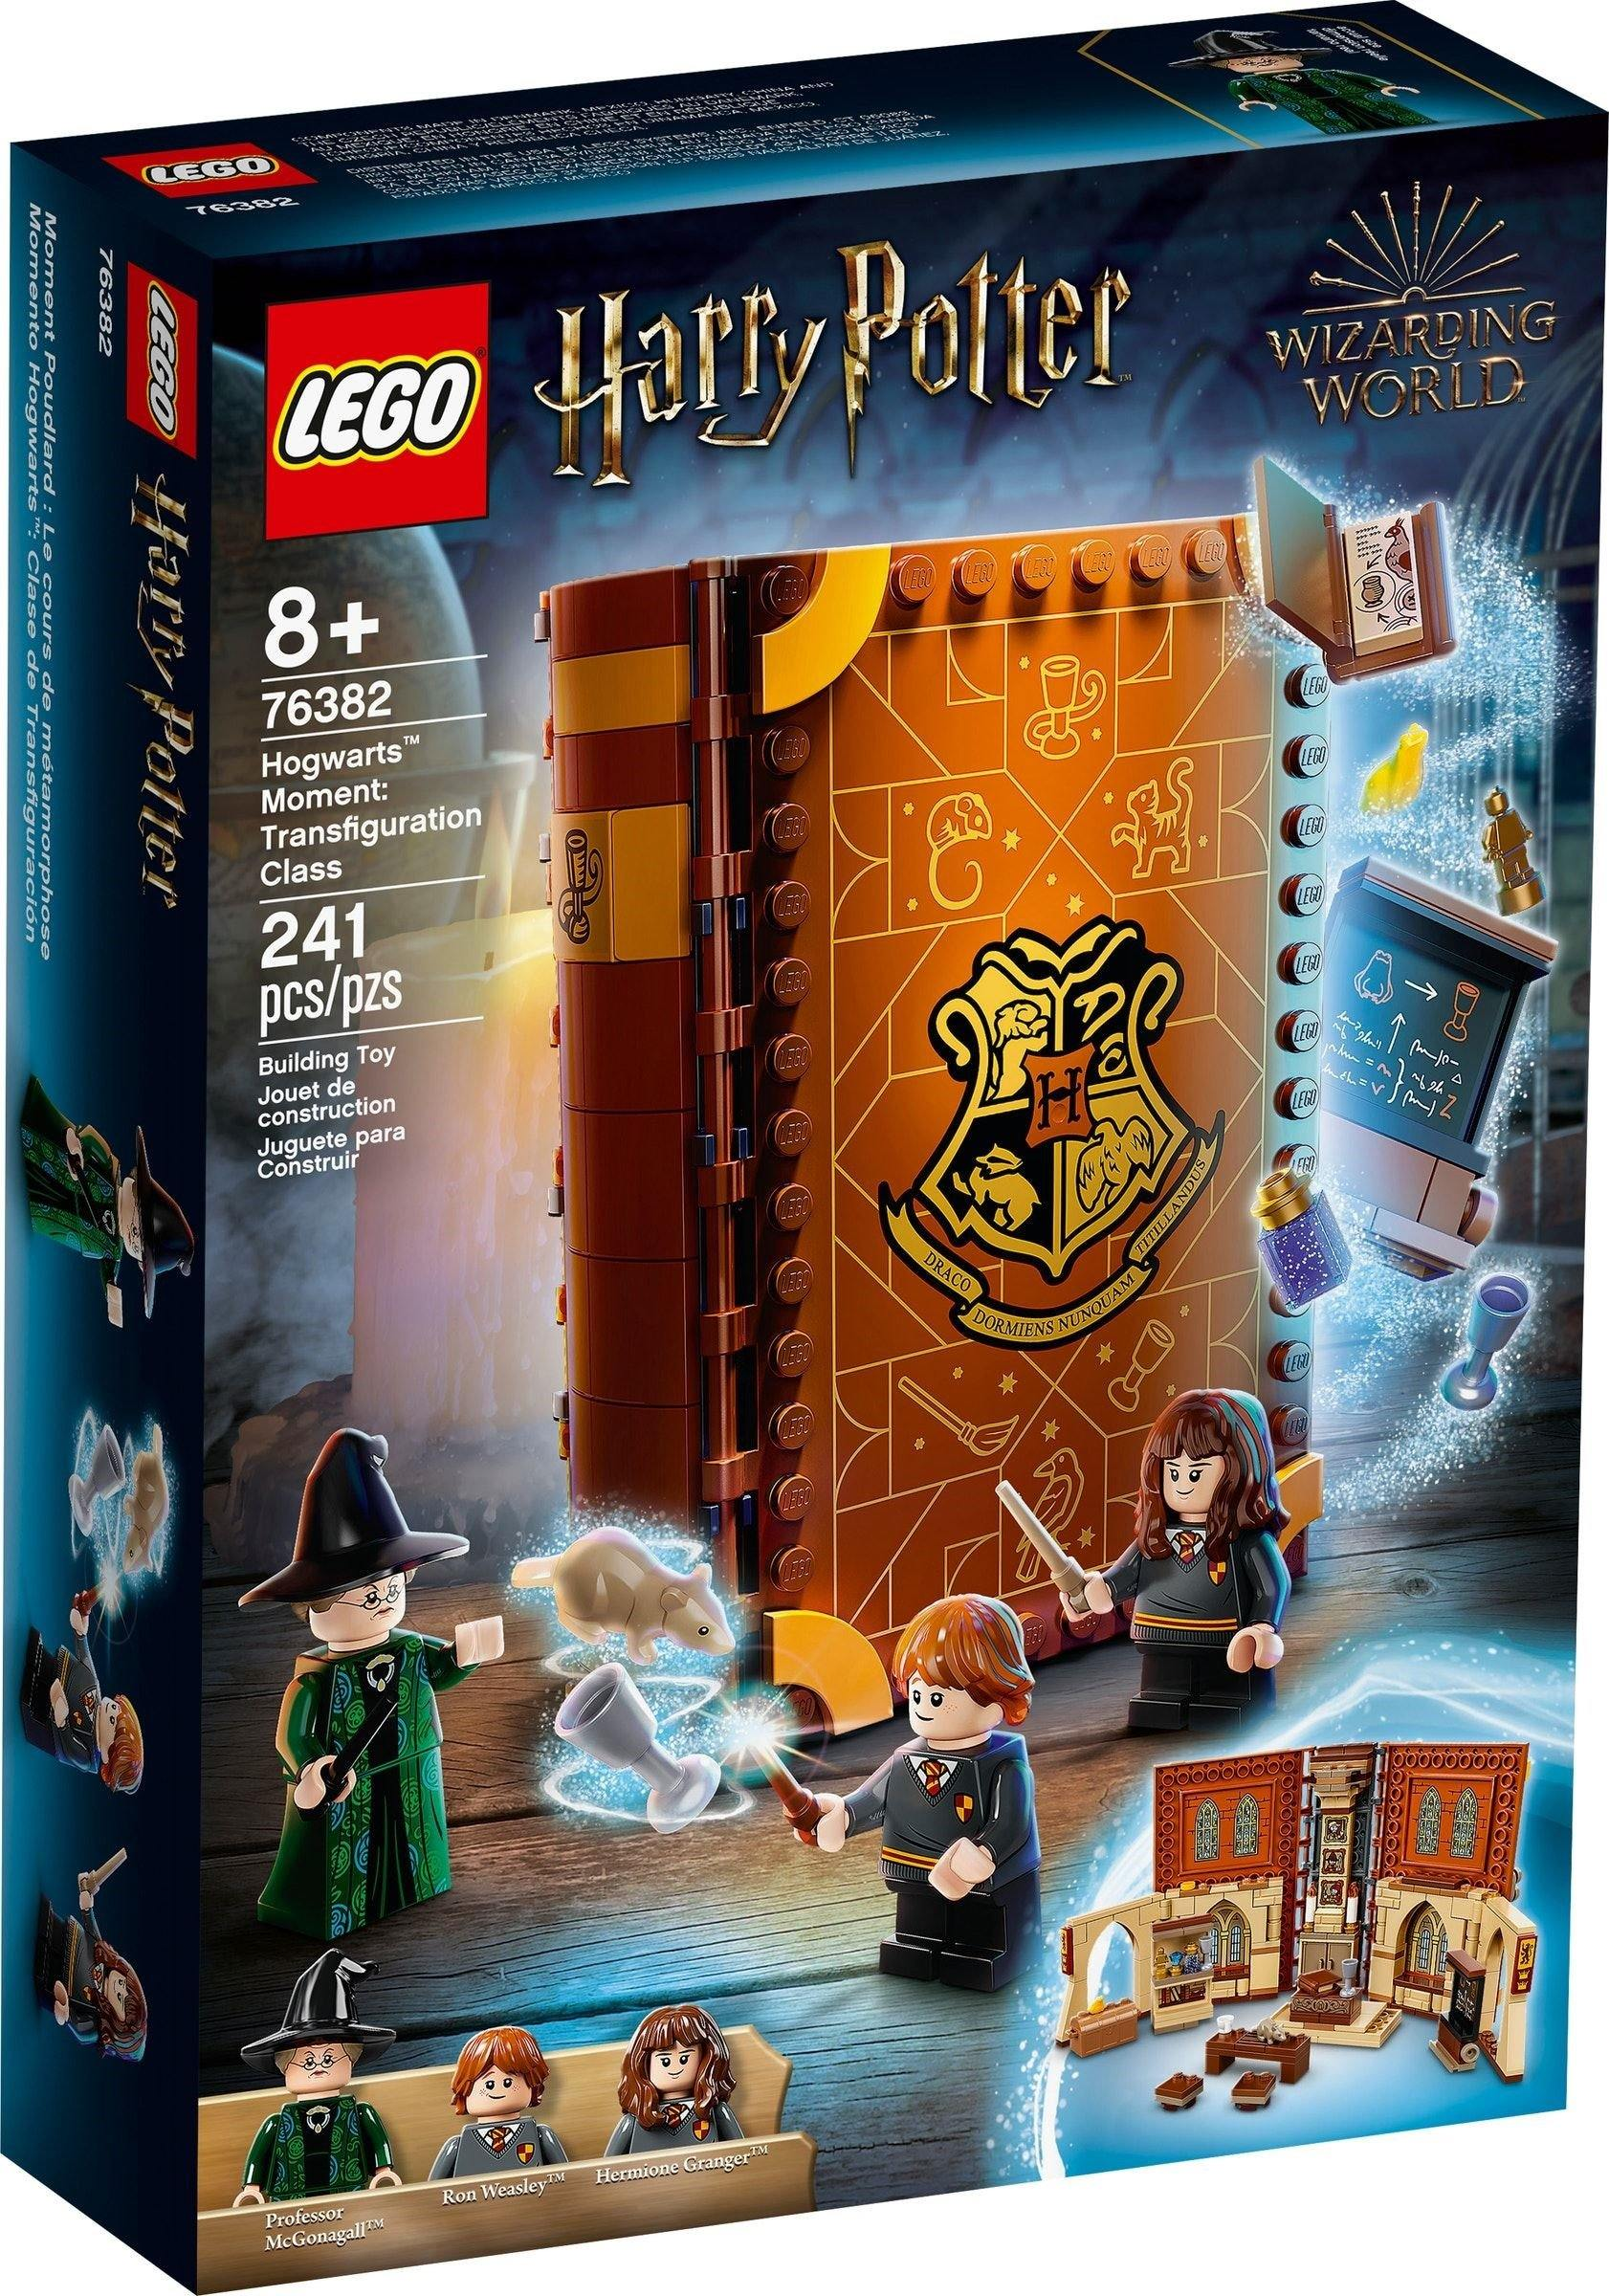 First look at LEGO set 76382 Harry Potter